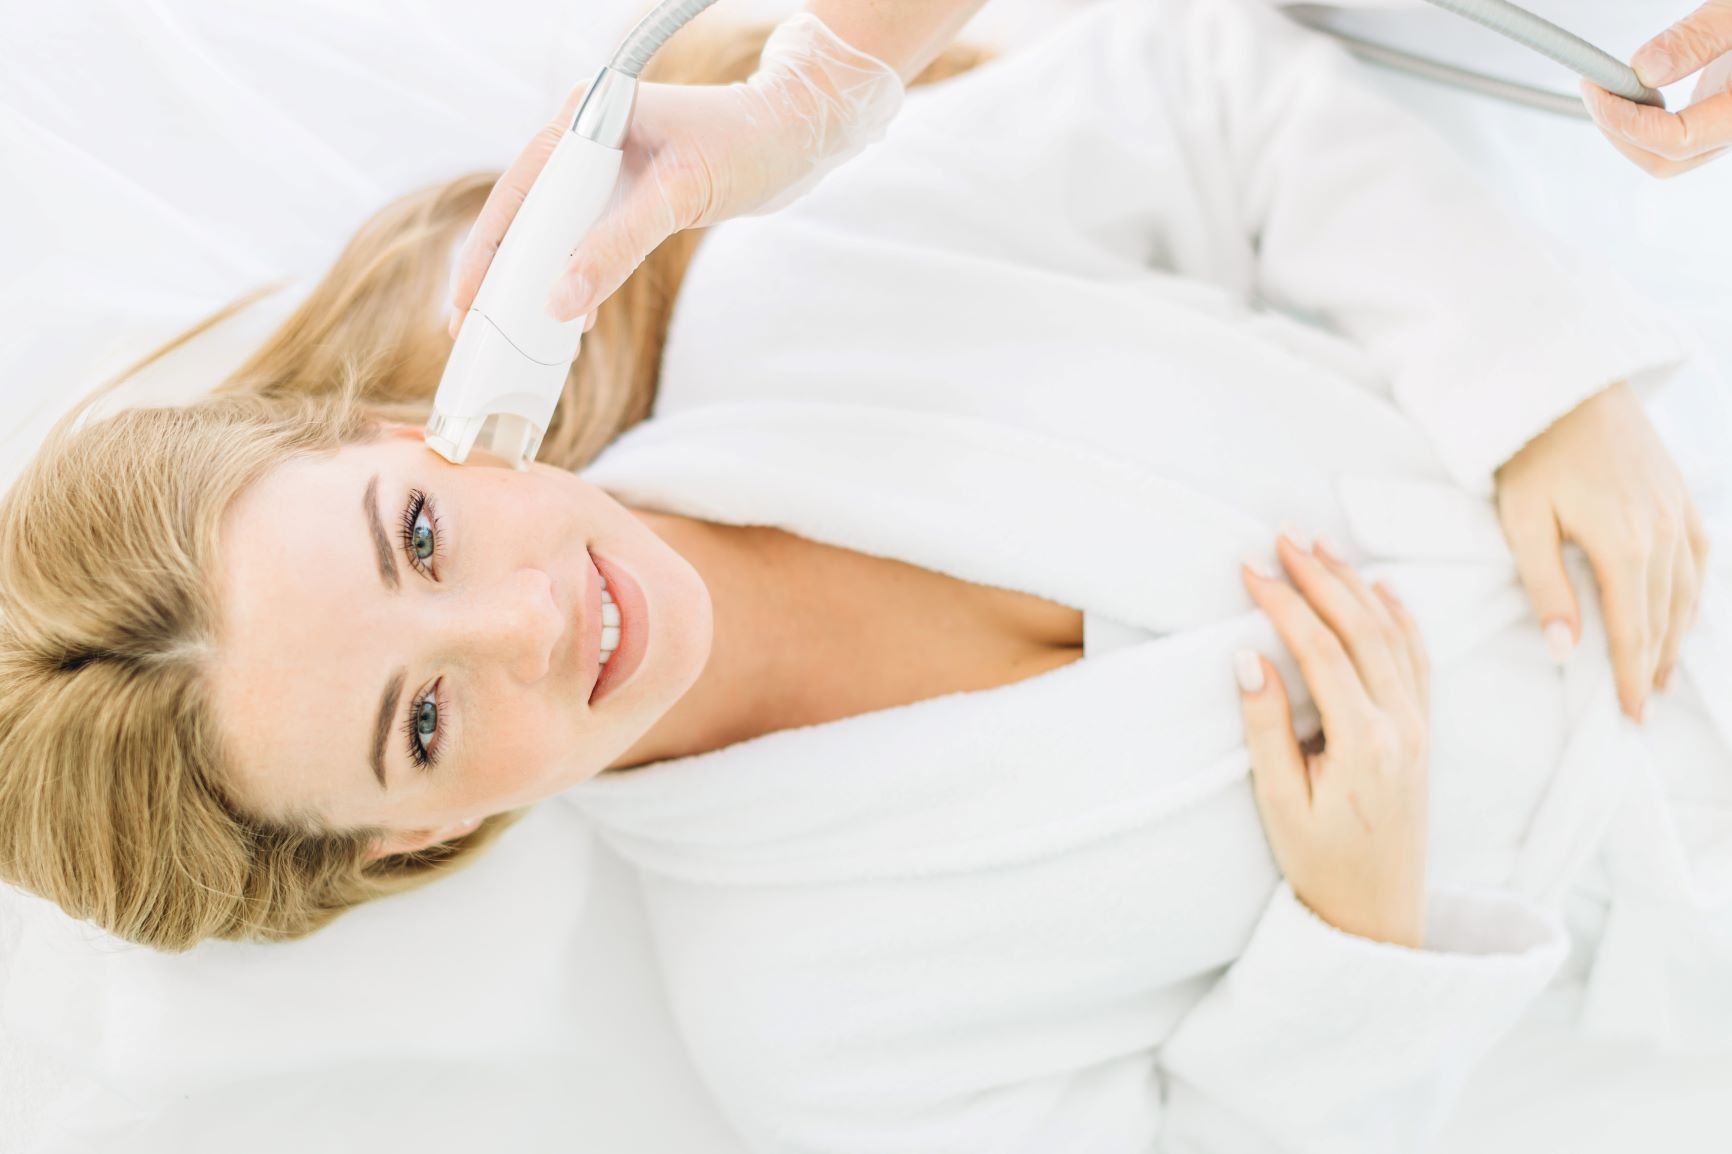 blonde woman receiving laser hair removal treatement